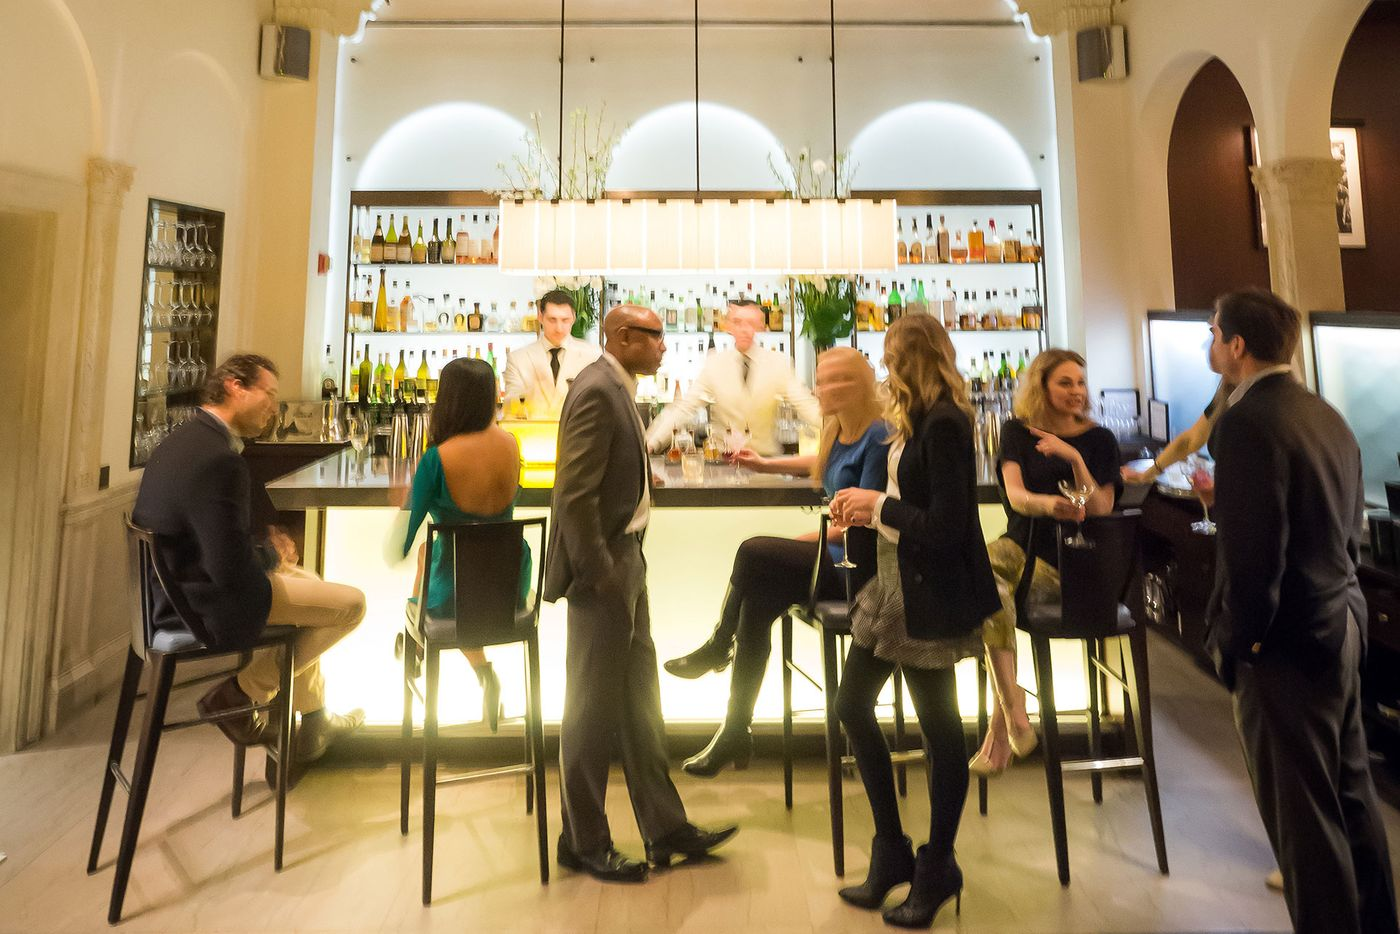 The Absolute Best Restaurants on the Upper East Side